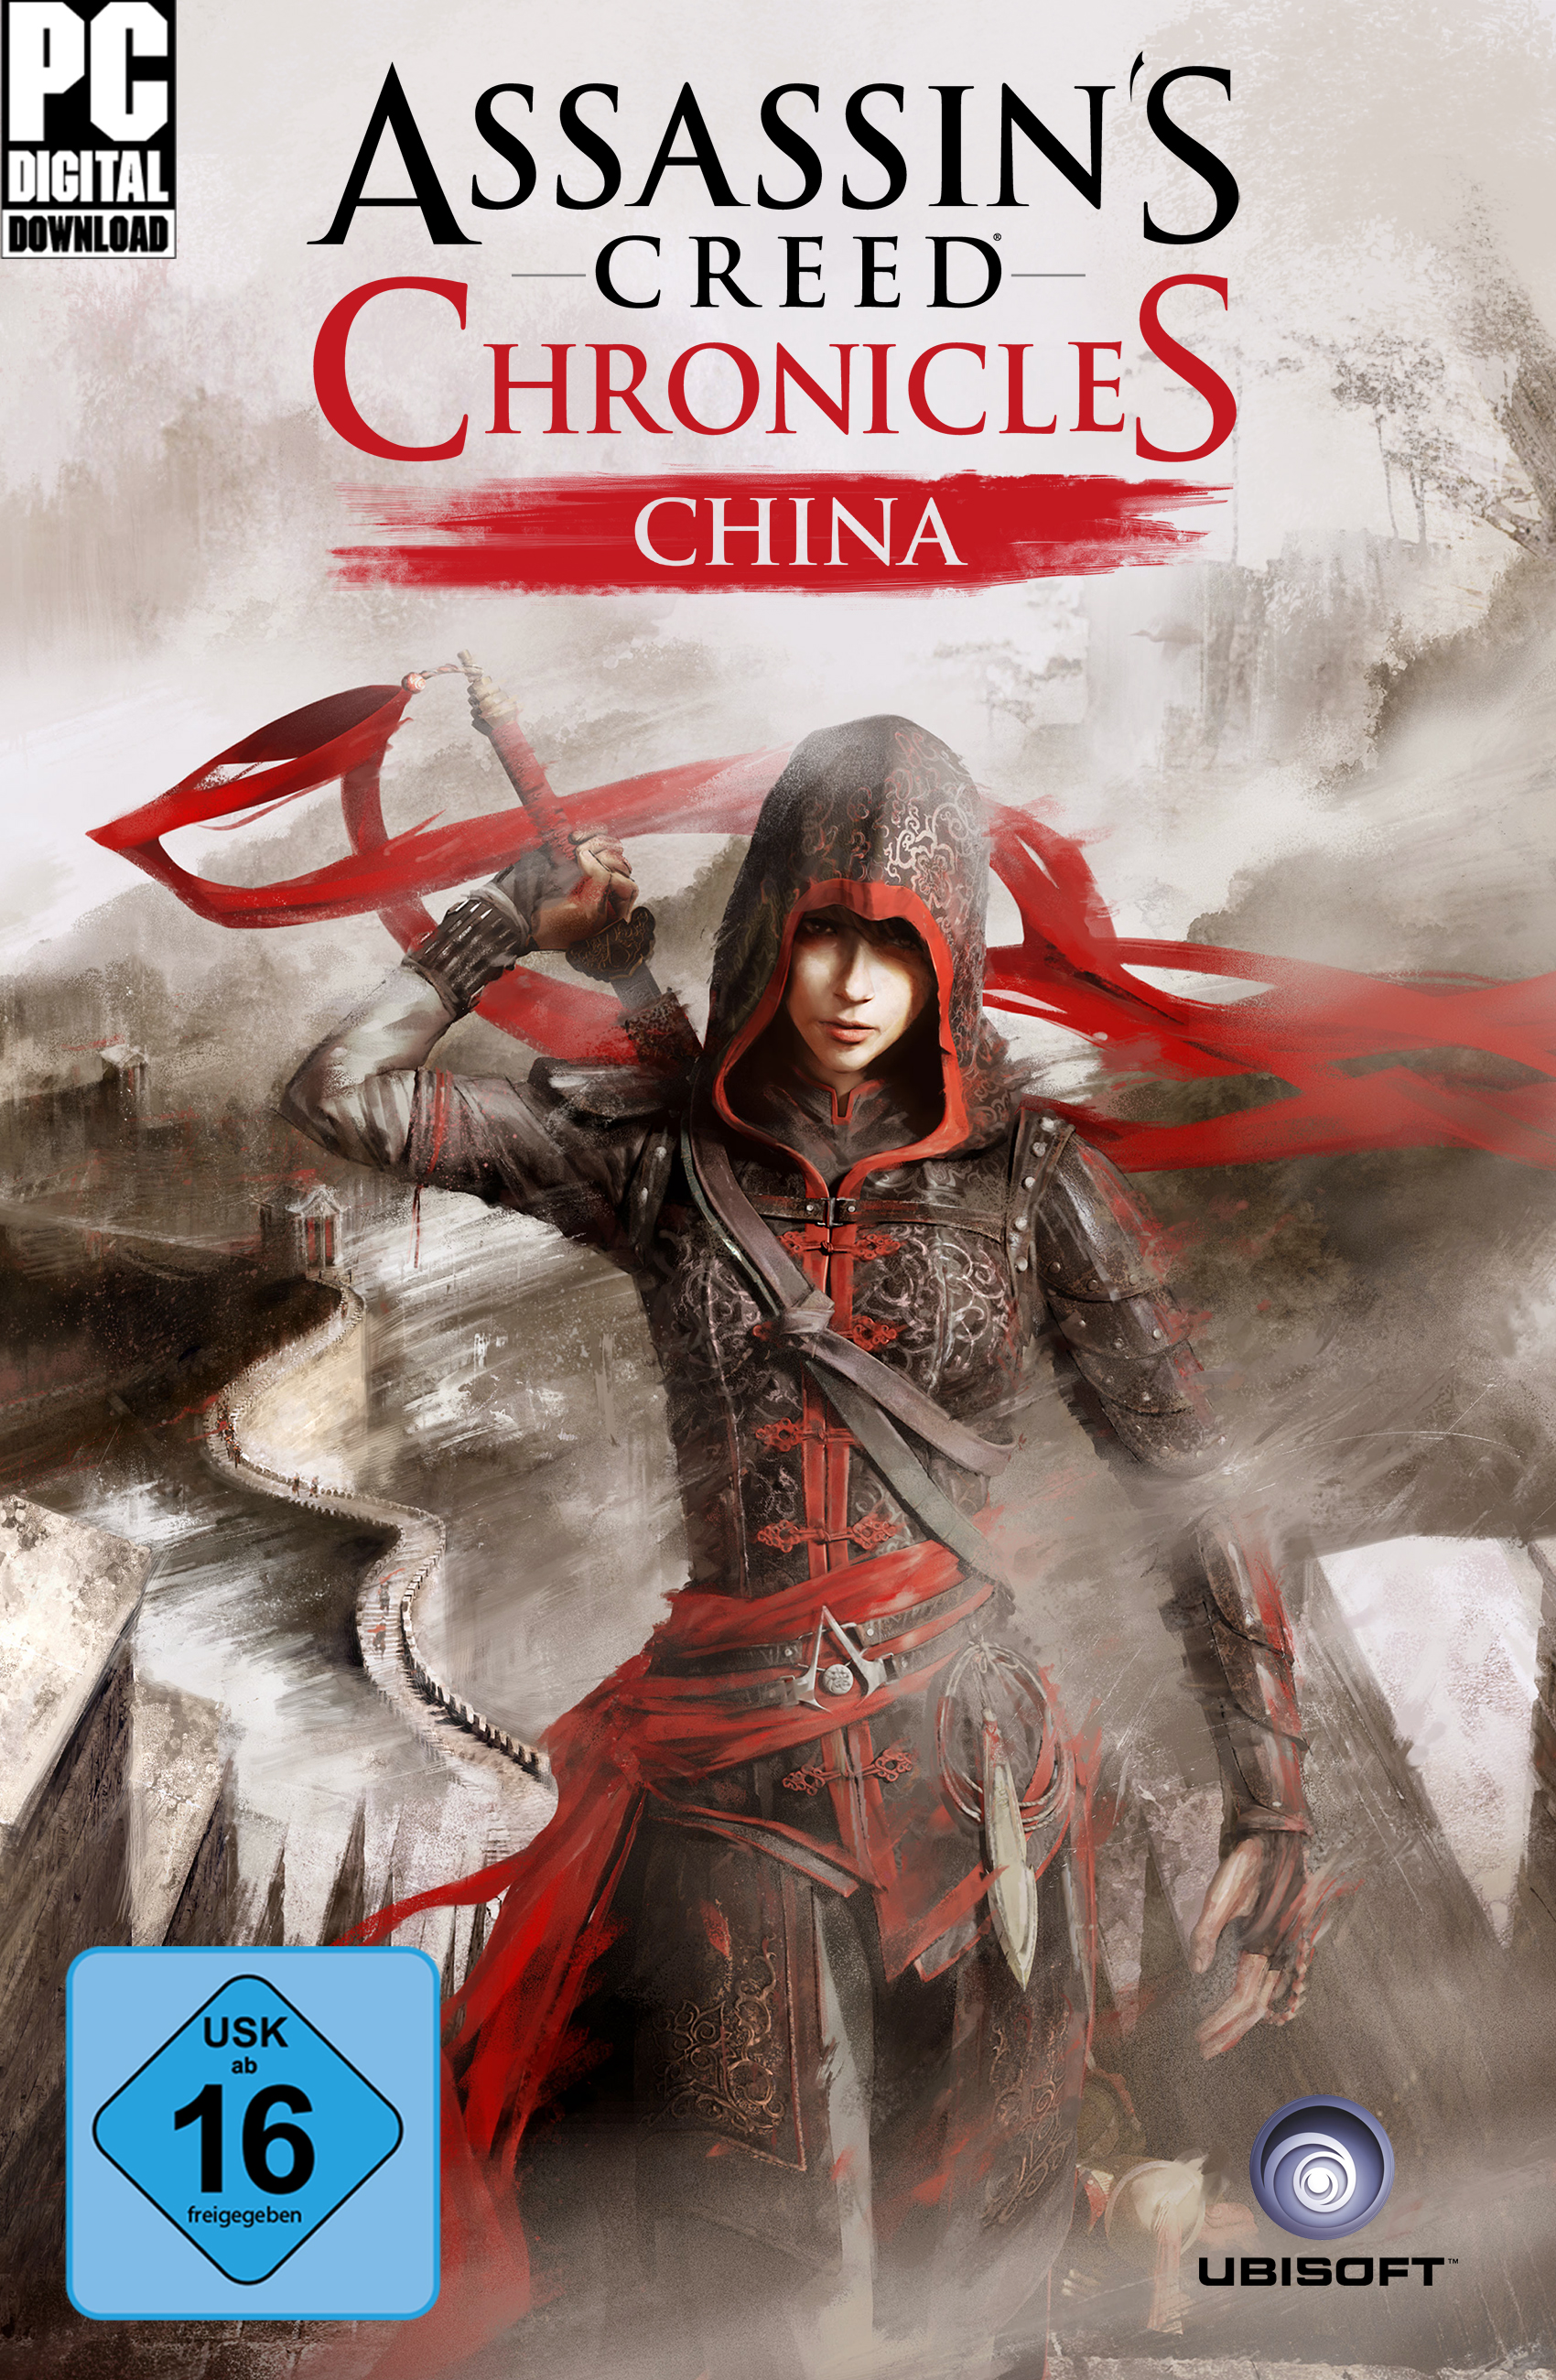 Assassins Creed Chronicles: China